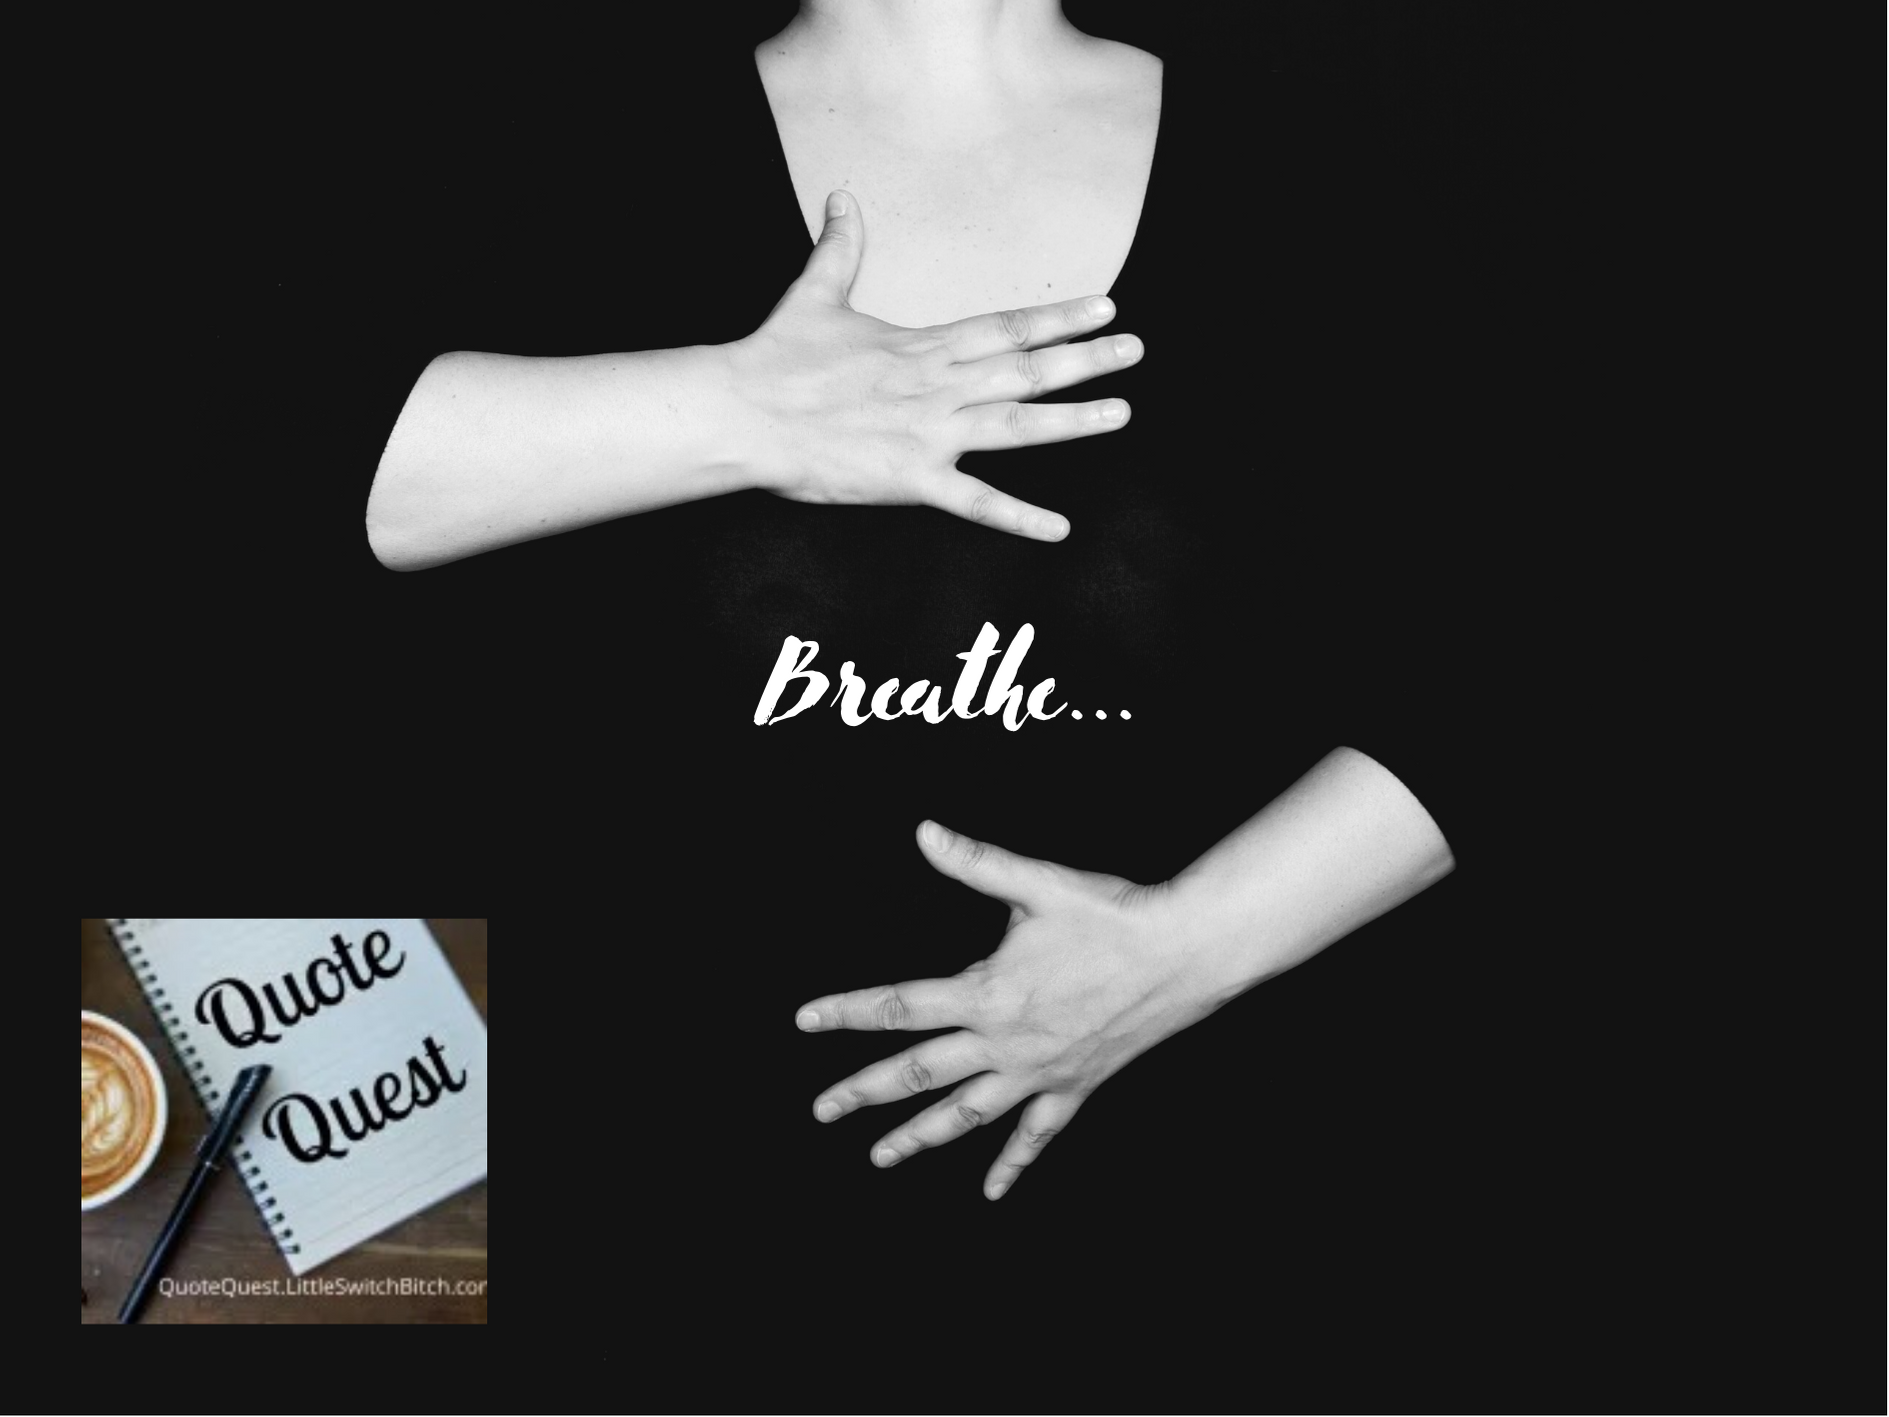 [Quote Quest] Breathe